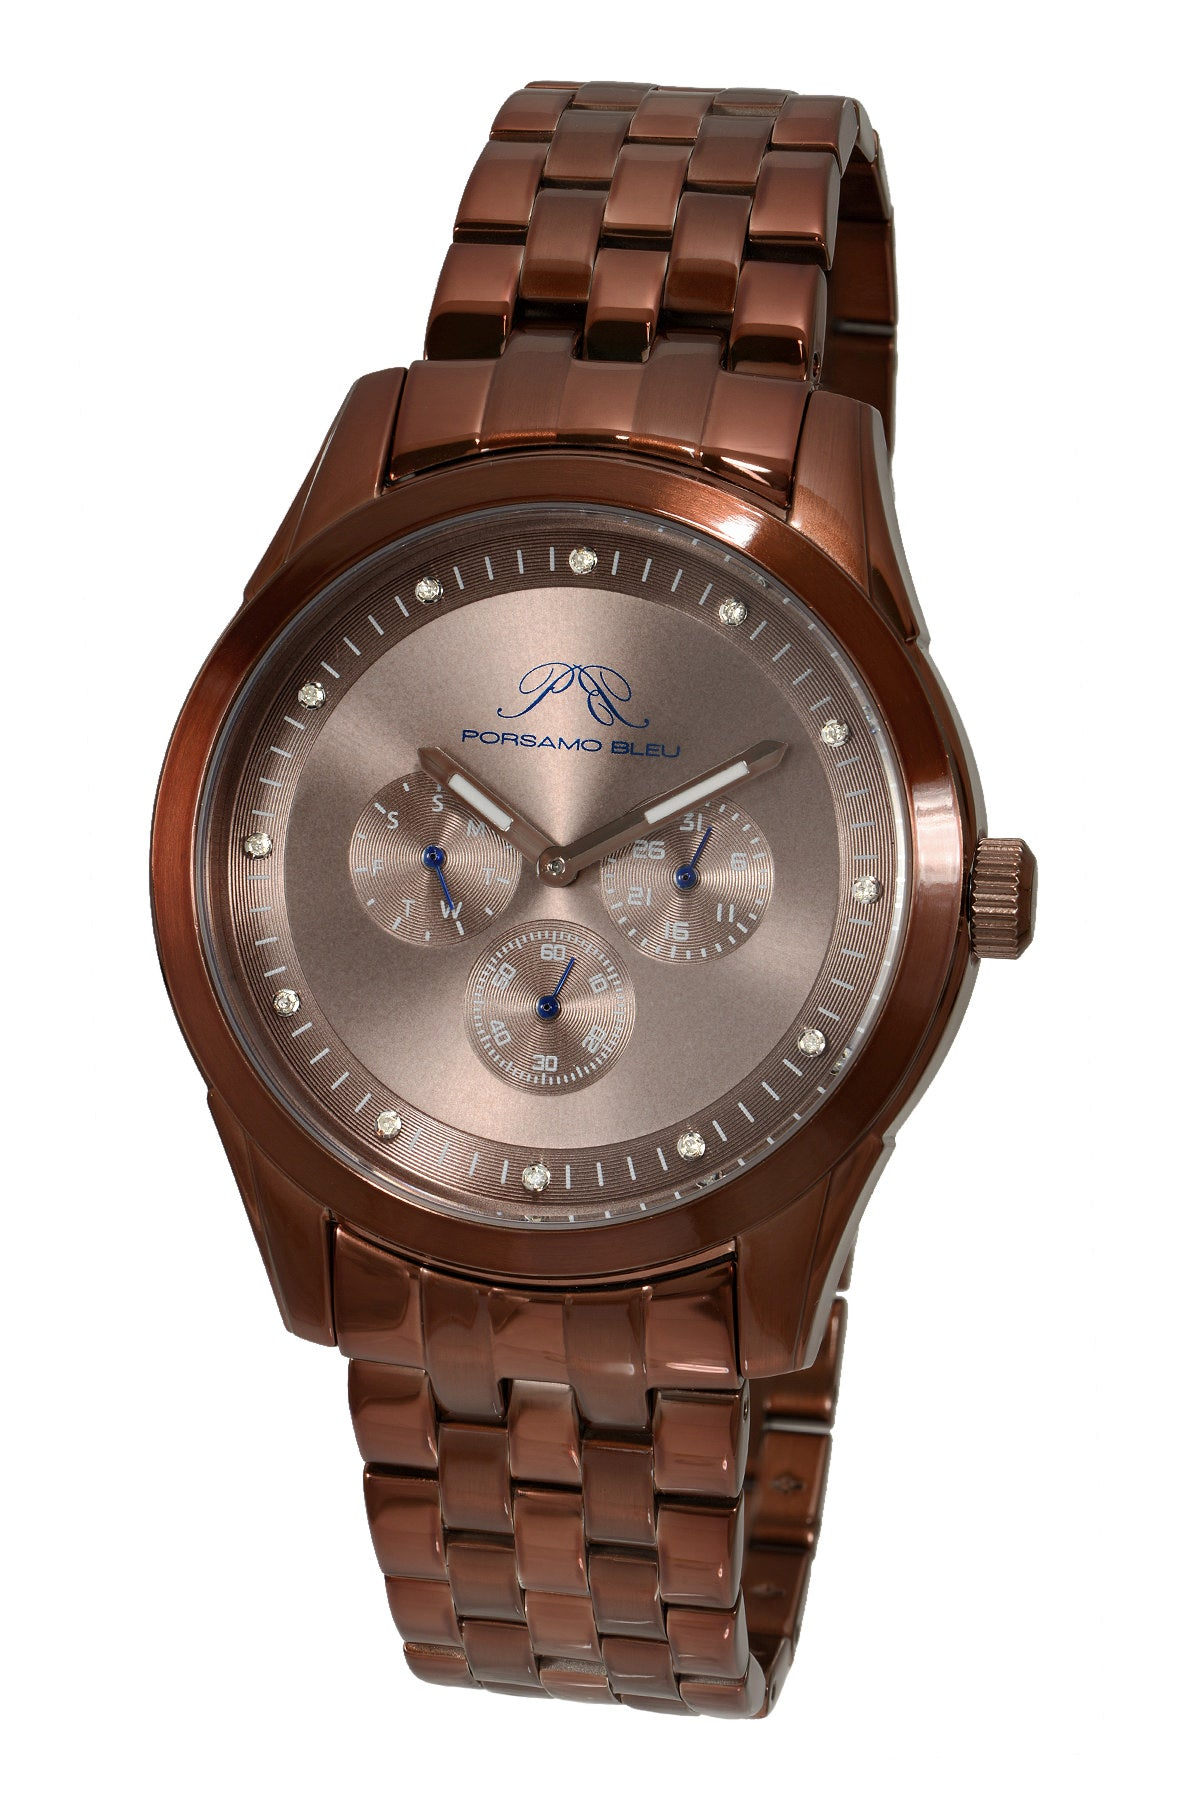 Porsamo Bleu Vince luxury diamond men's stainless steel watch, brown 751BVIS